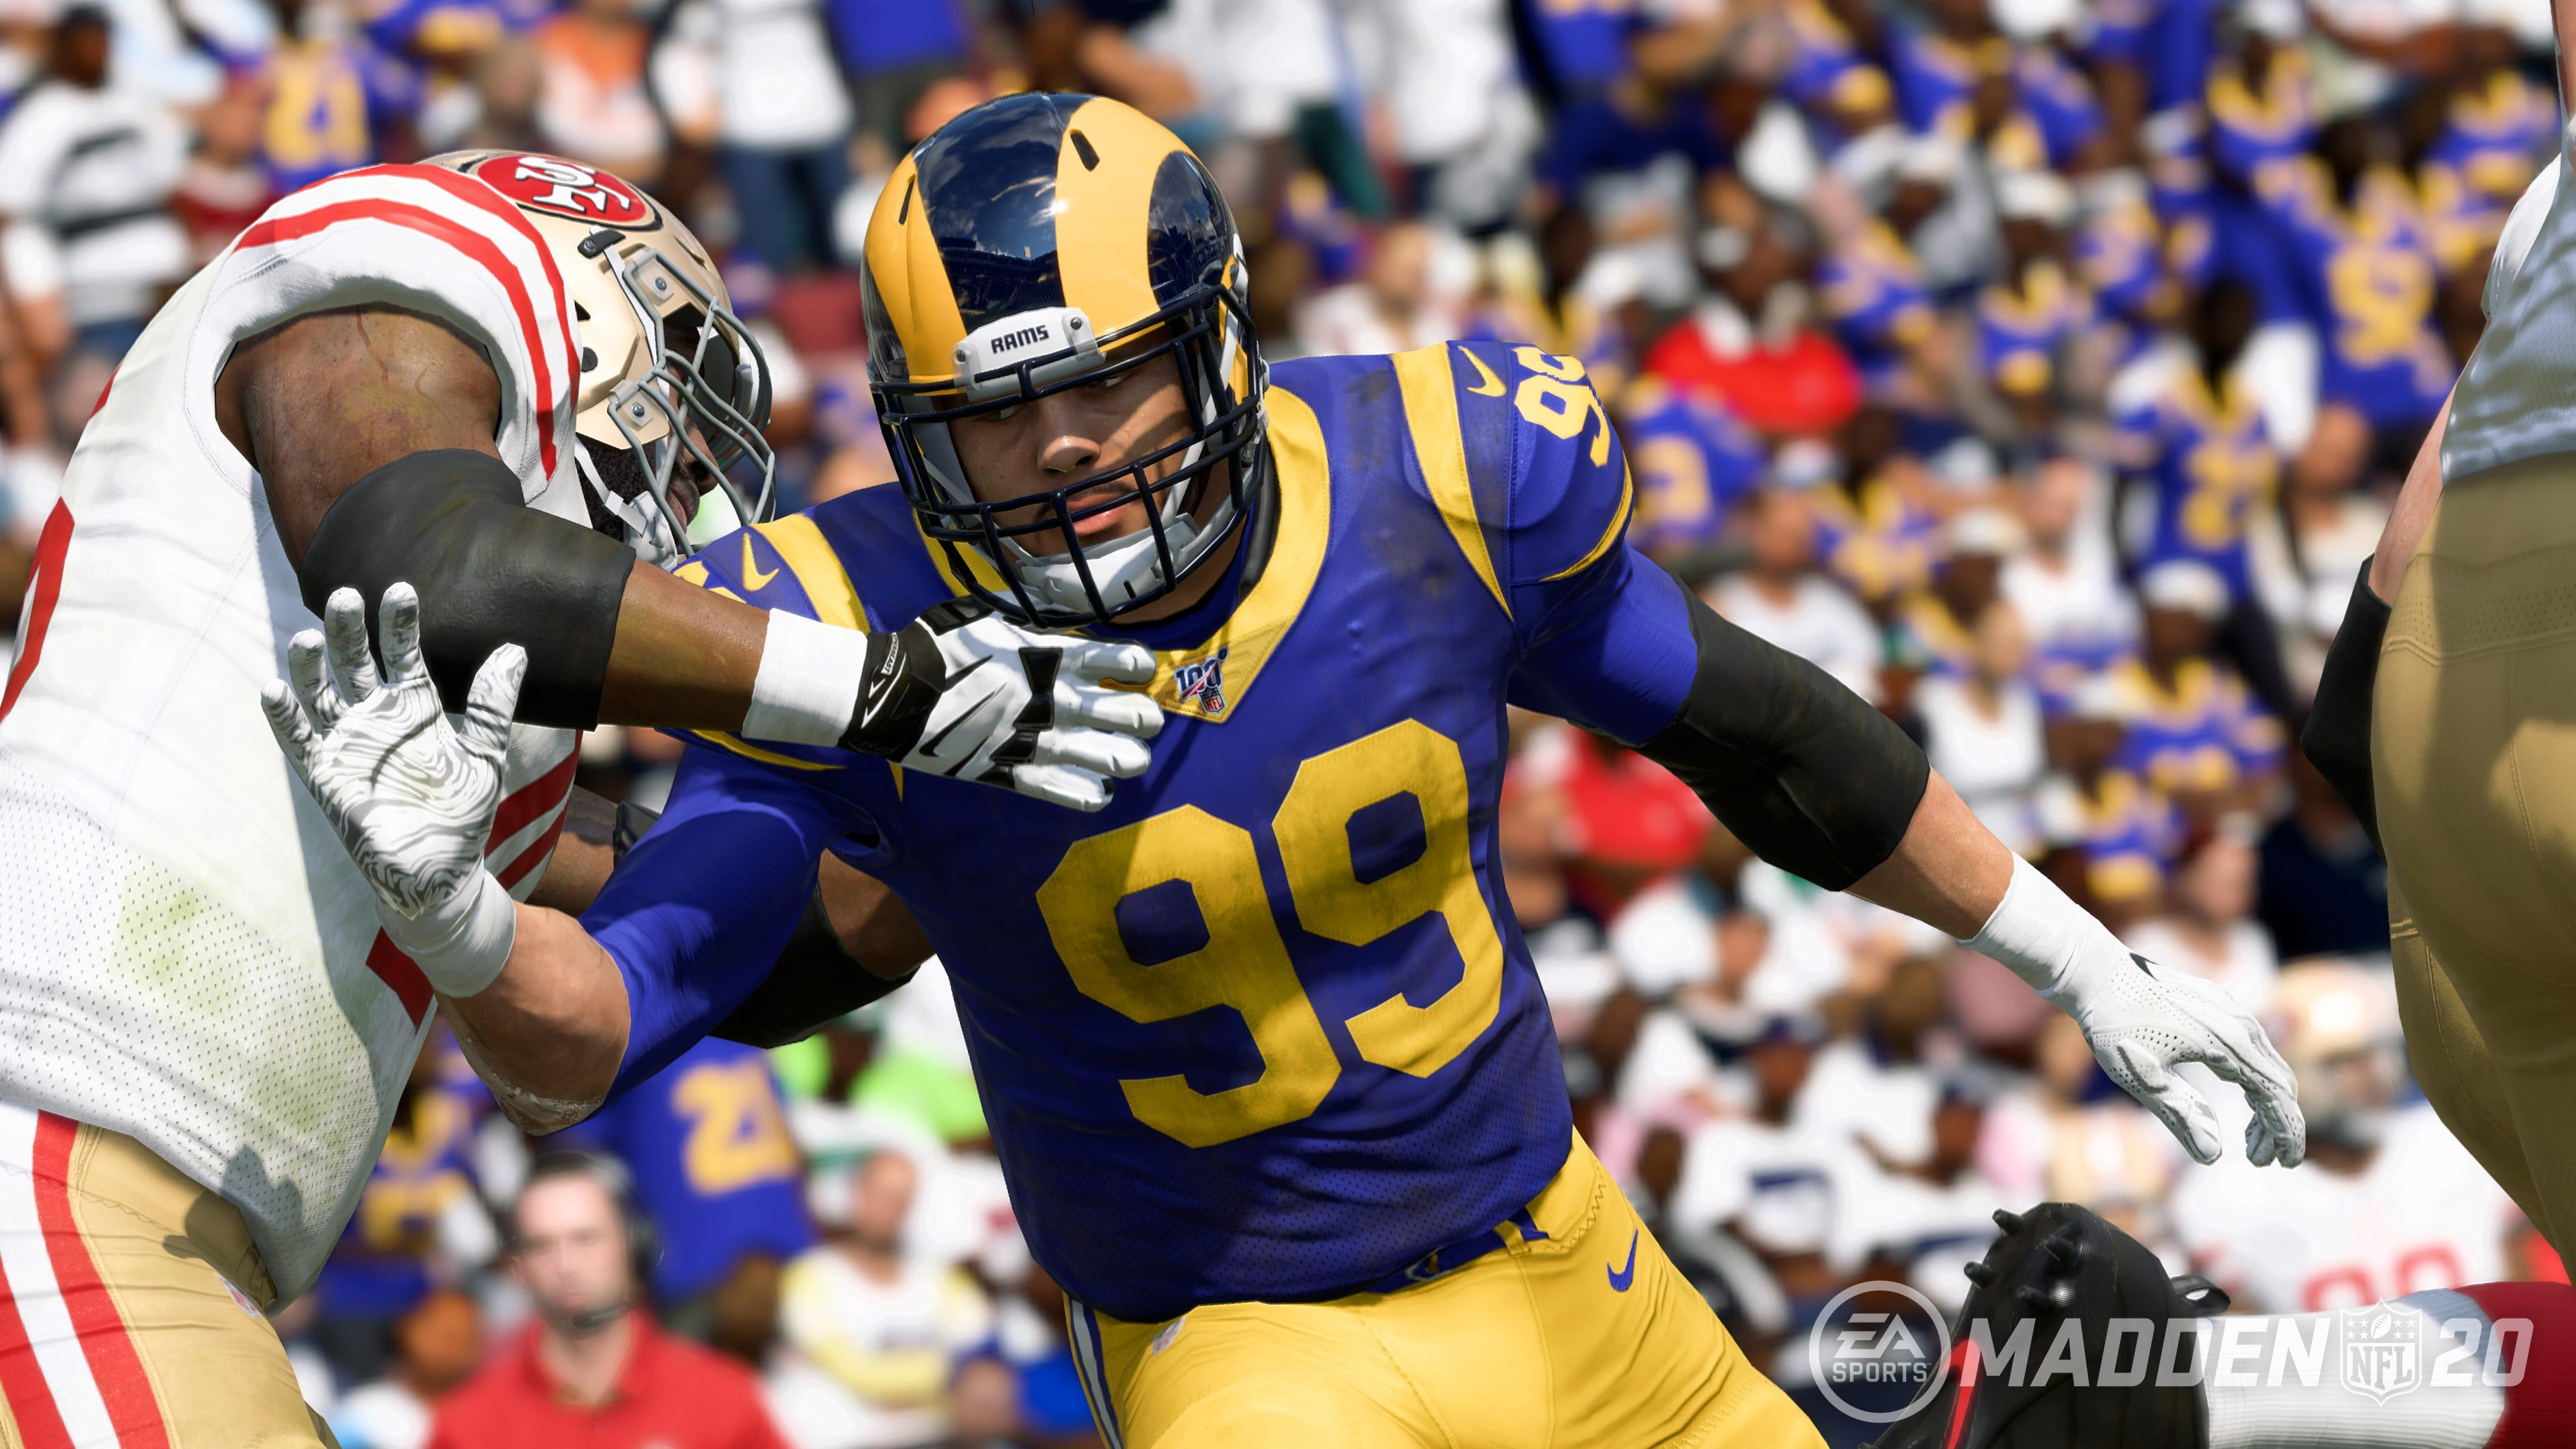 Who are the four top-rated NFL players in 'Madden NFL 20'? Only one plays on offense